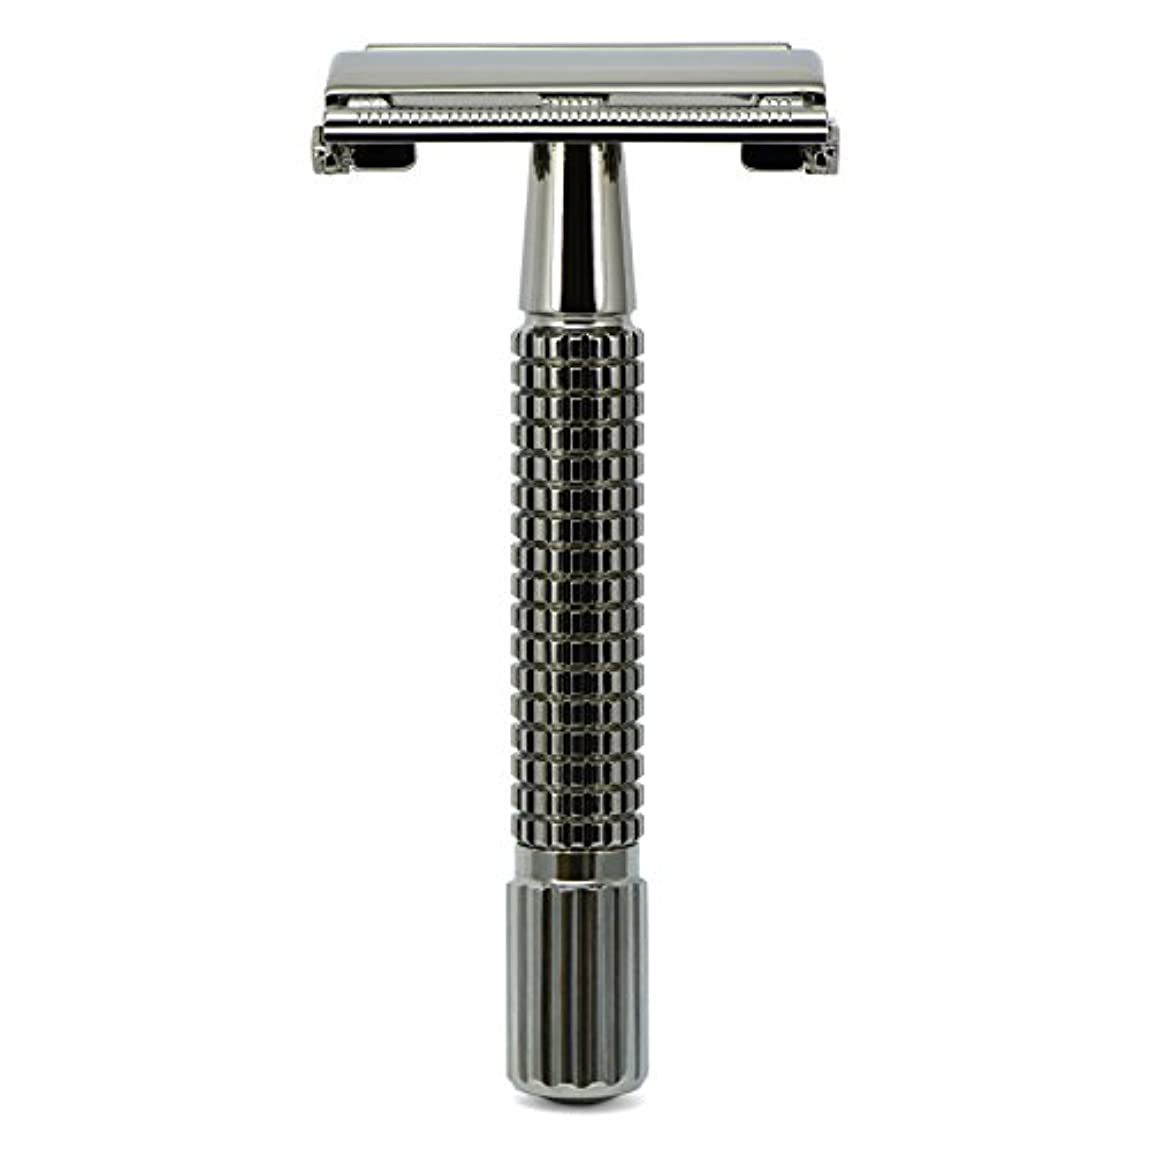 子羊驚いたことにはねかけるG&F - Gentle Shaver Safety razor, Butterfly, black chrome, 8 cm